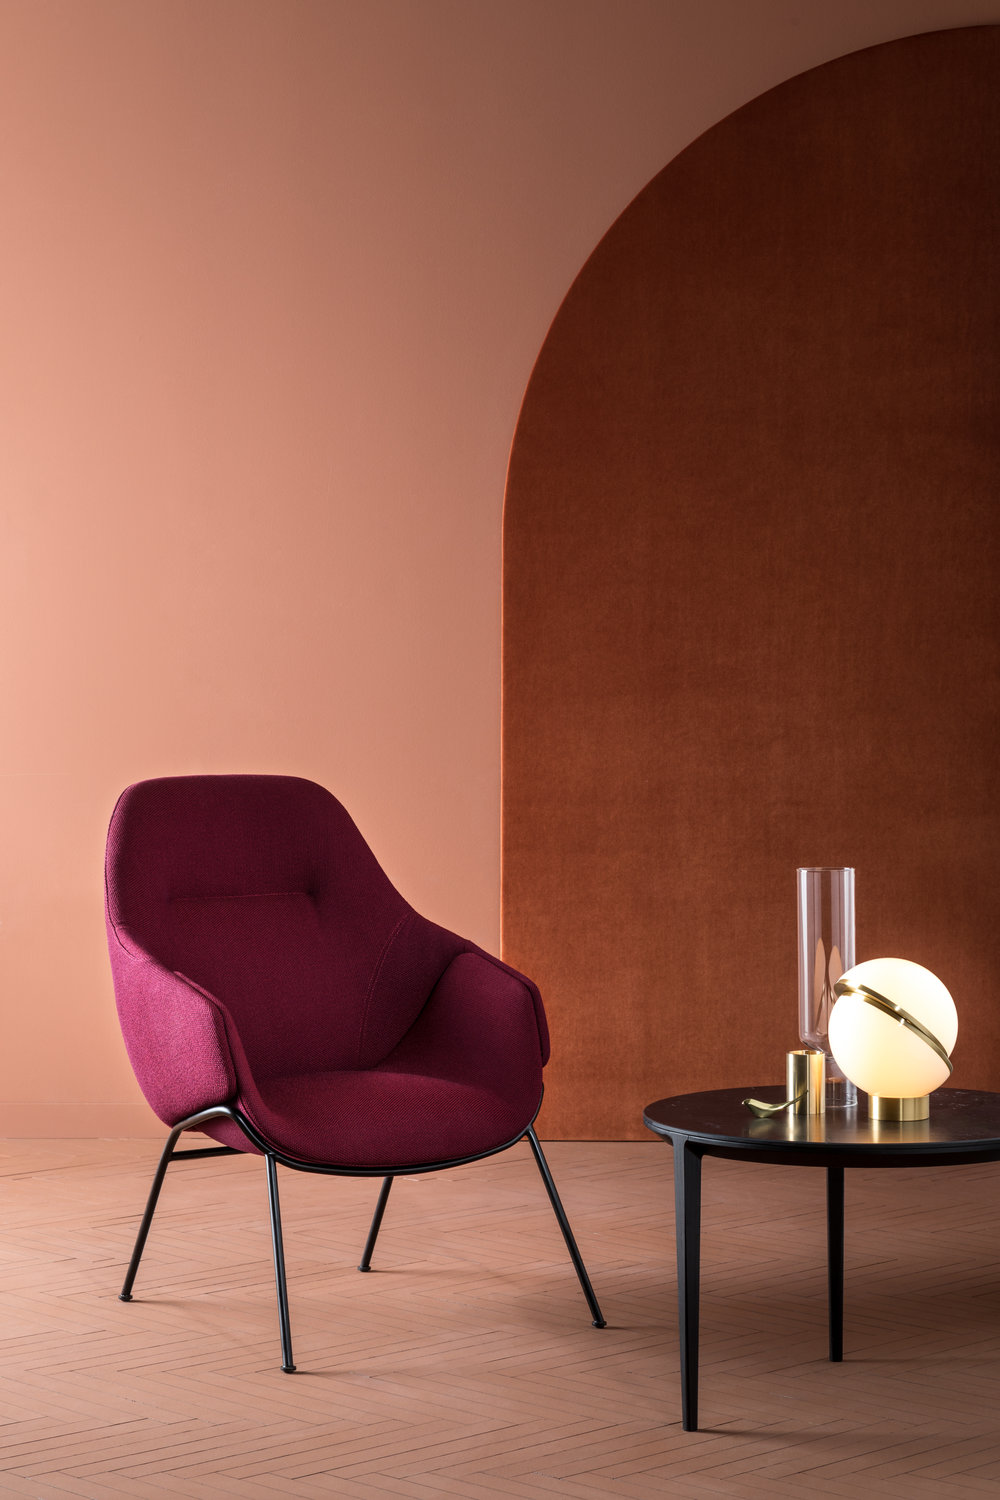 The Anita armchair re-articulated, the new high-back version with its simple rod base projecting 1950s glamour.